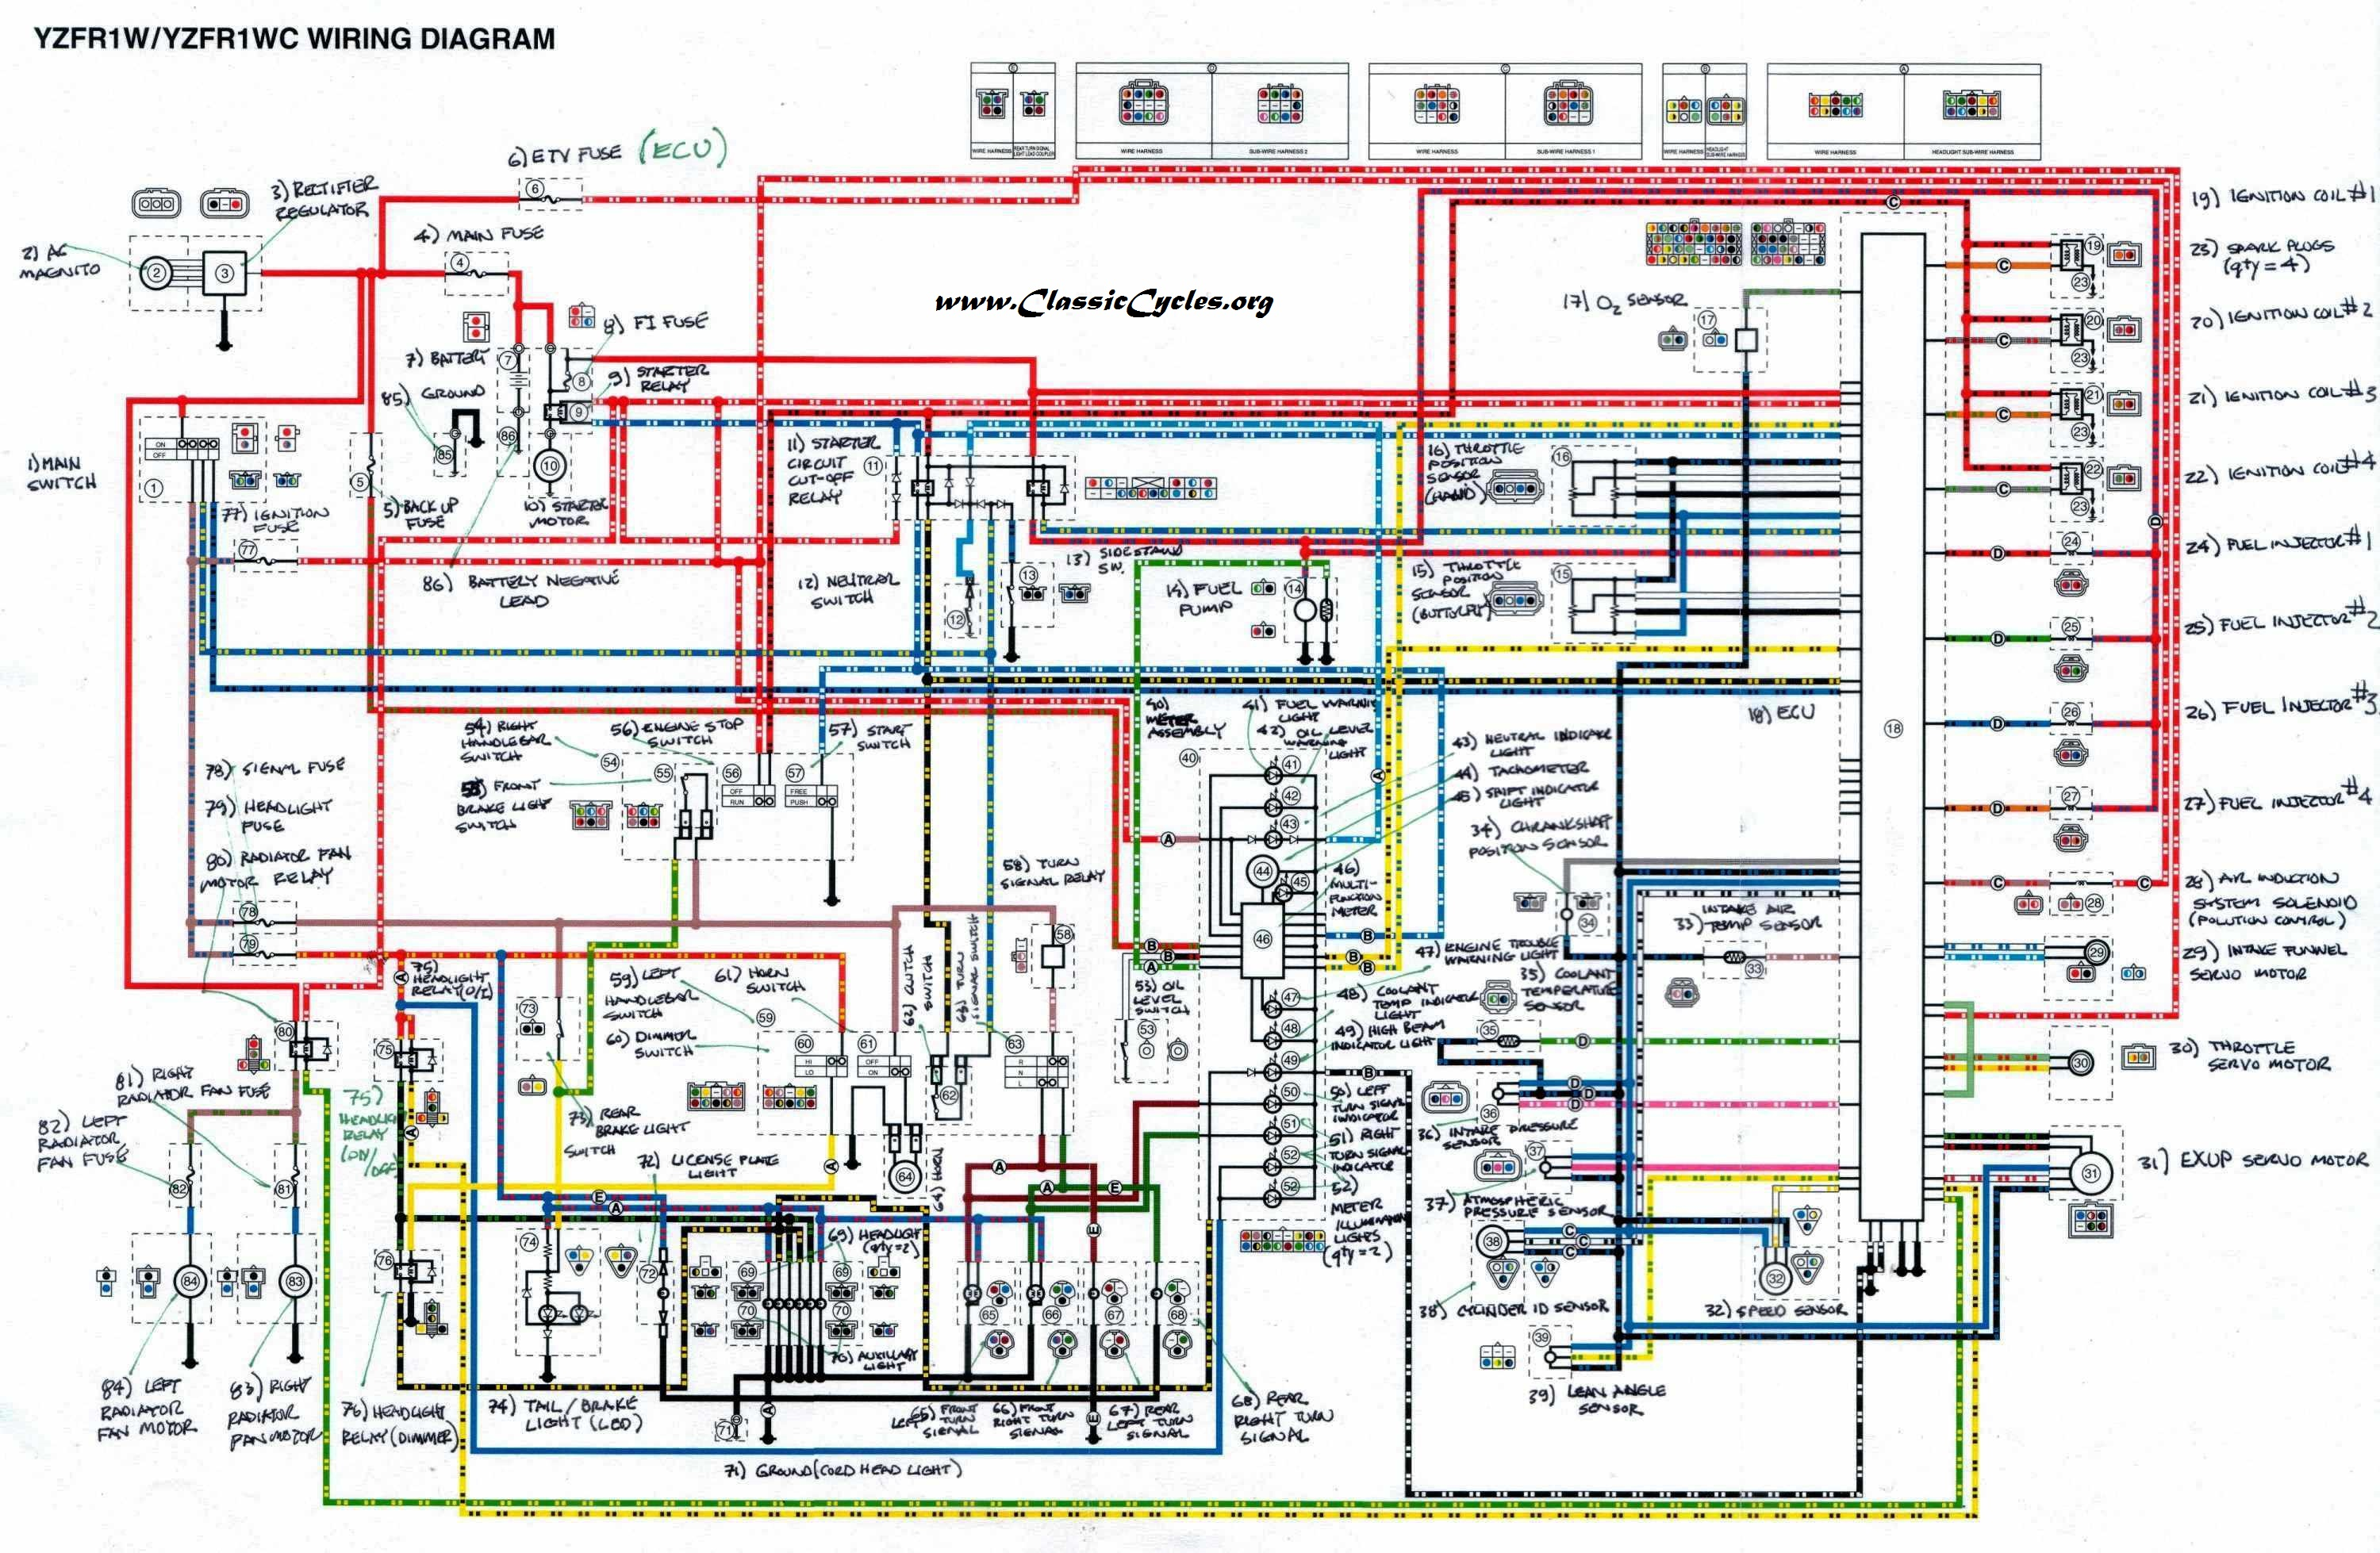 yamaha gx 80 1976 moto yamaha gt80 wiring diagram free picture schematic wiring diagram data